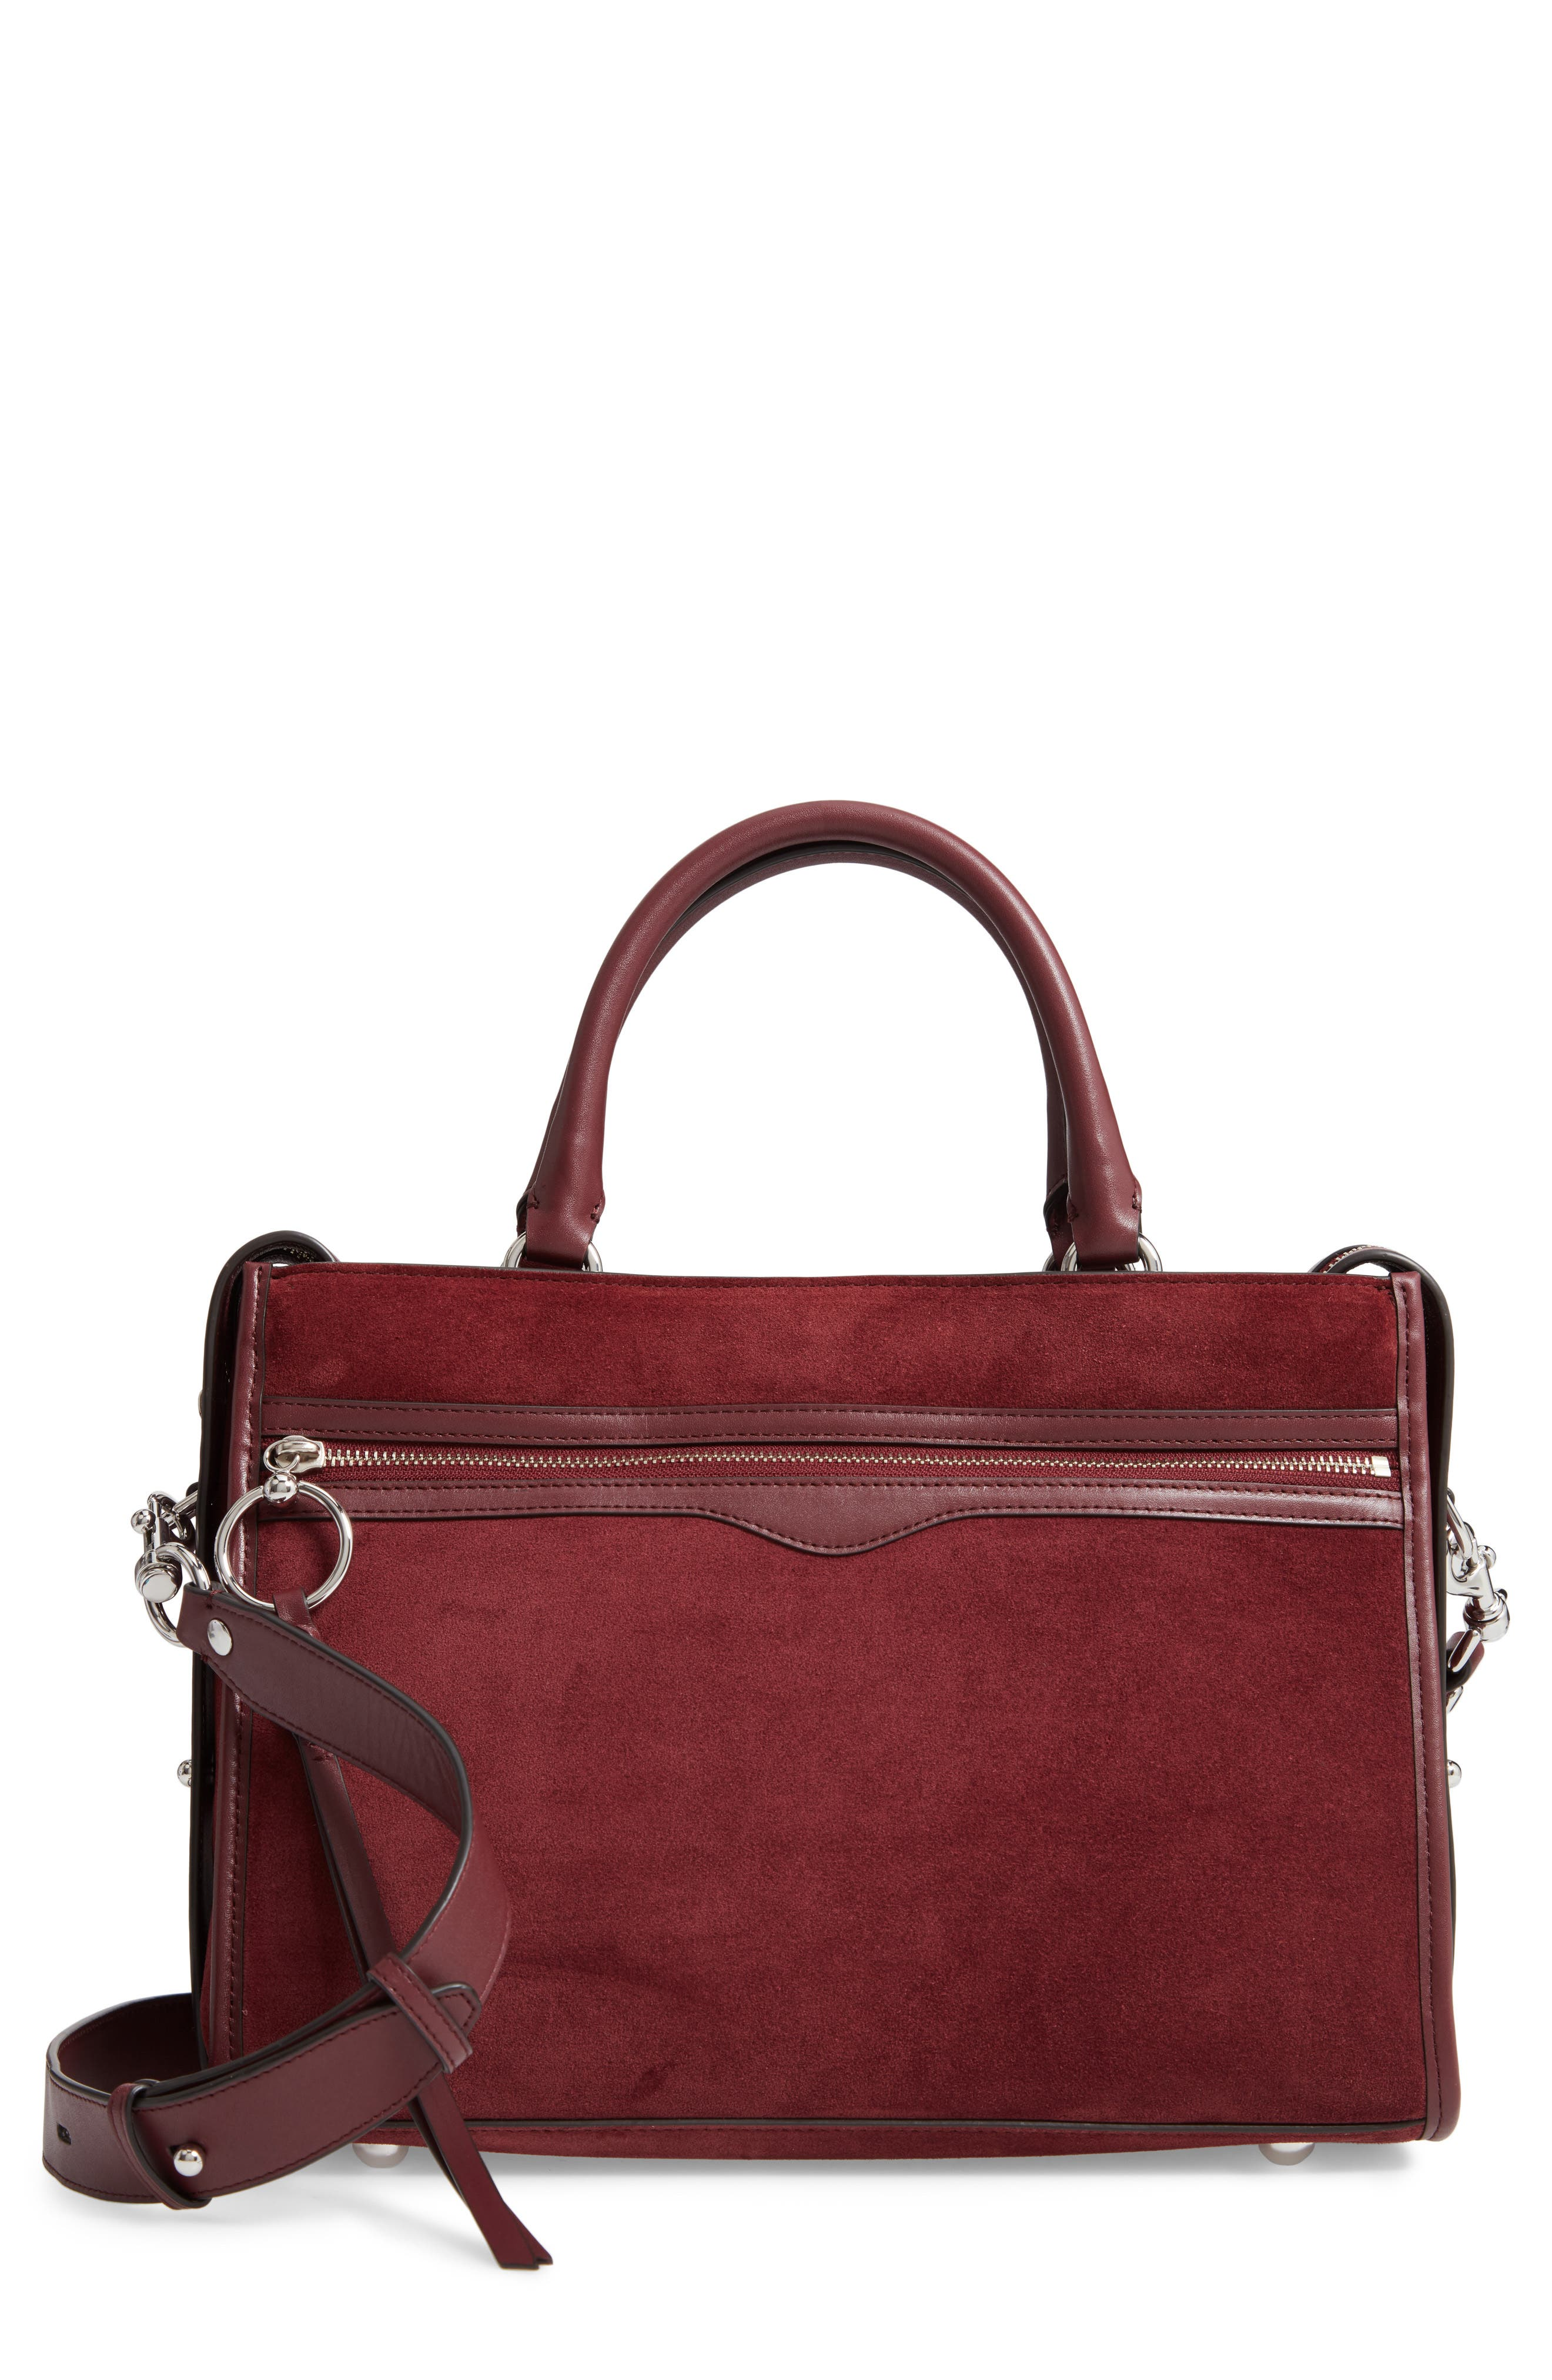 Bedford Suede Satchel,                             Main thumbnail 1, color,                             600